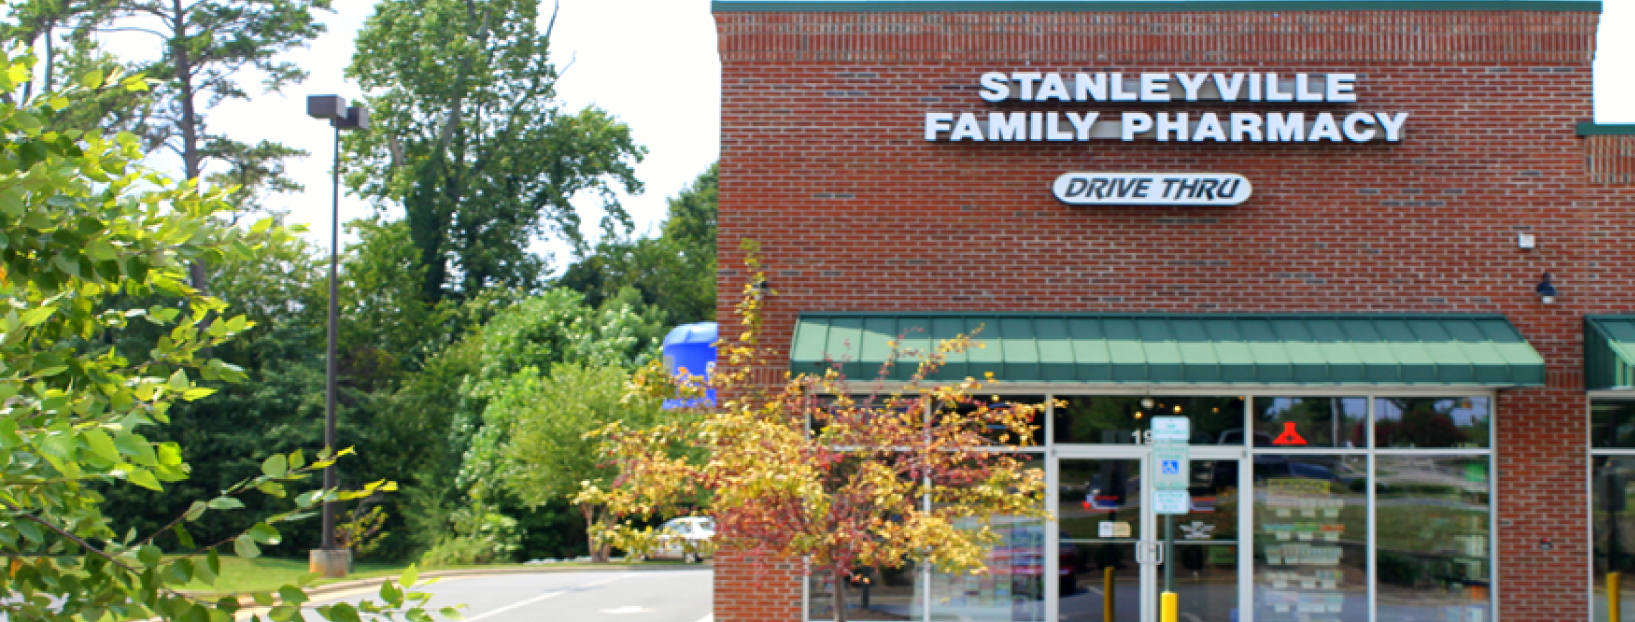 picture-of-stanleyville-family-pharmacy-building-in-winston-salem-north-carolina